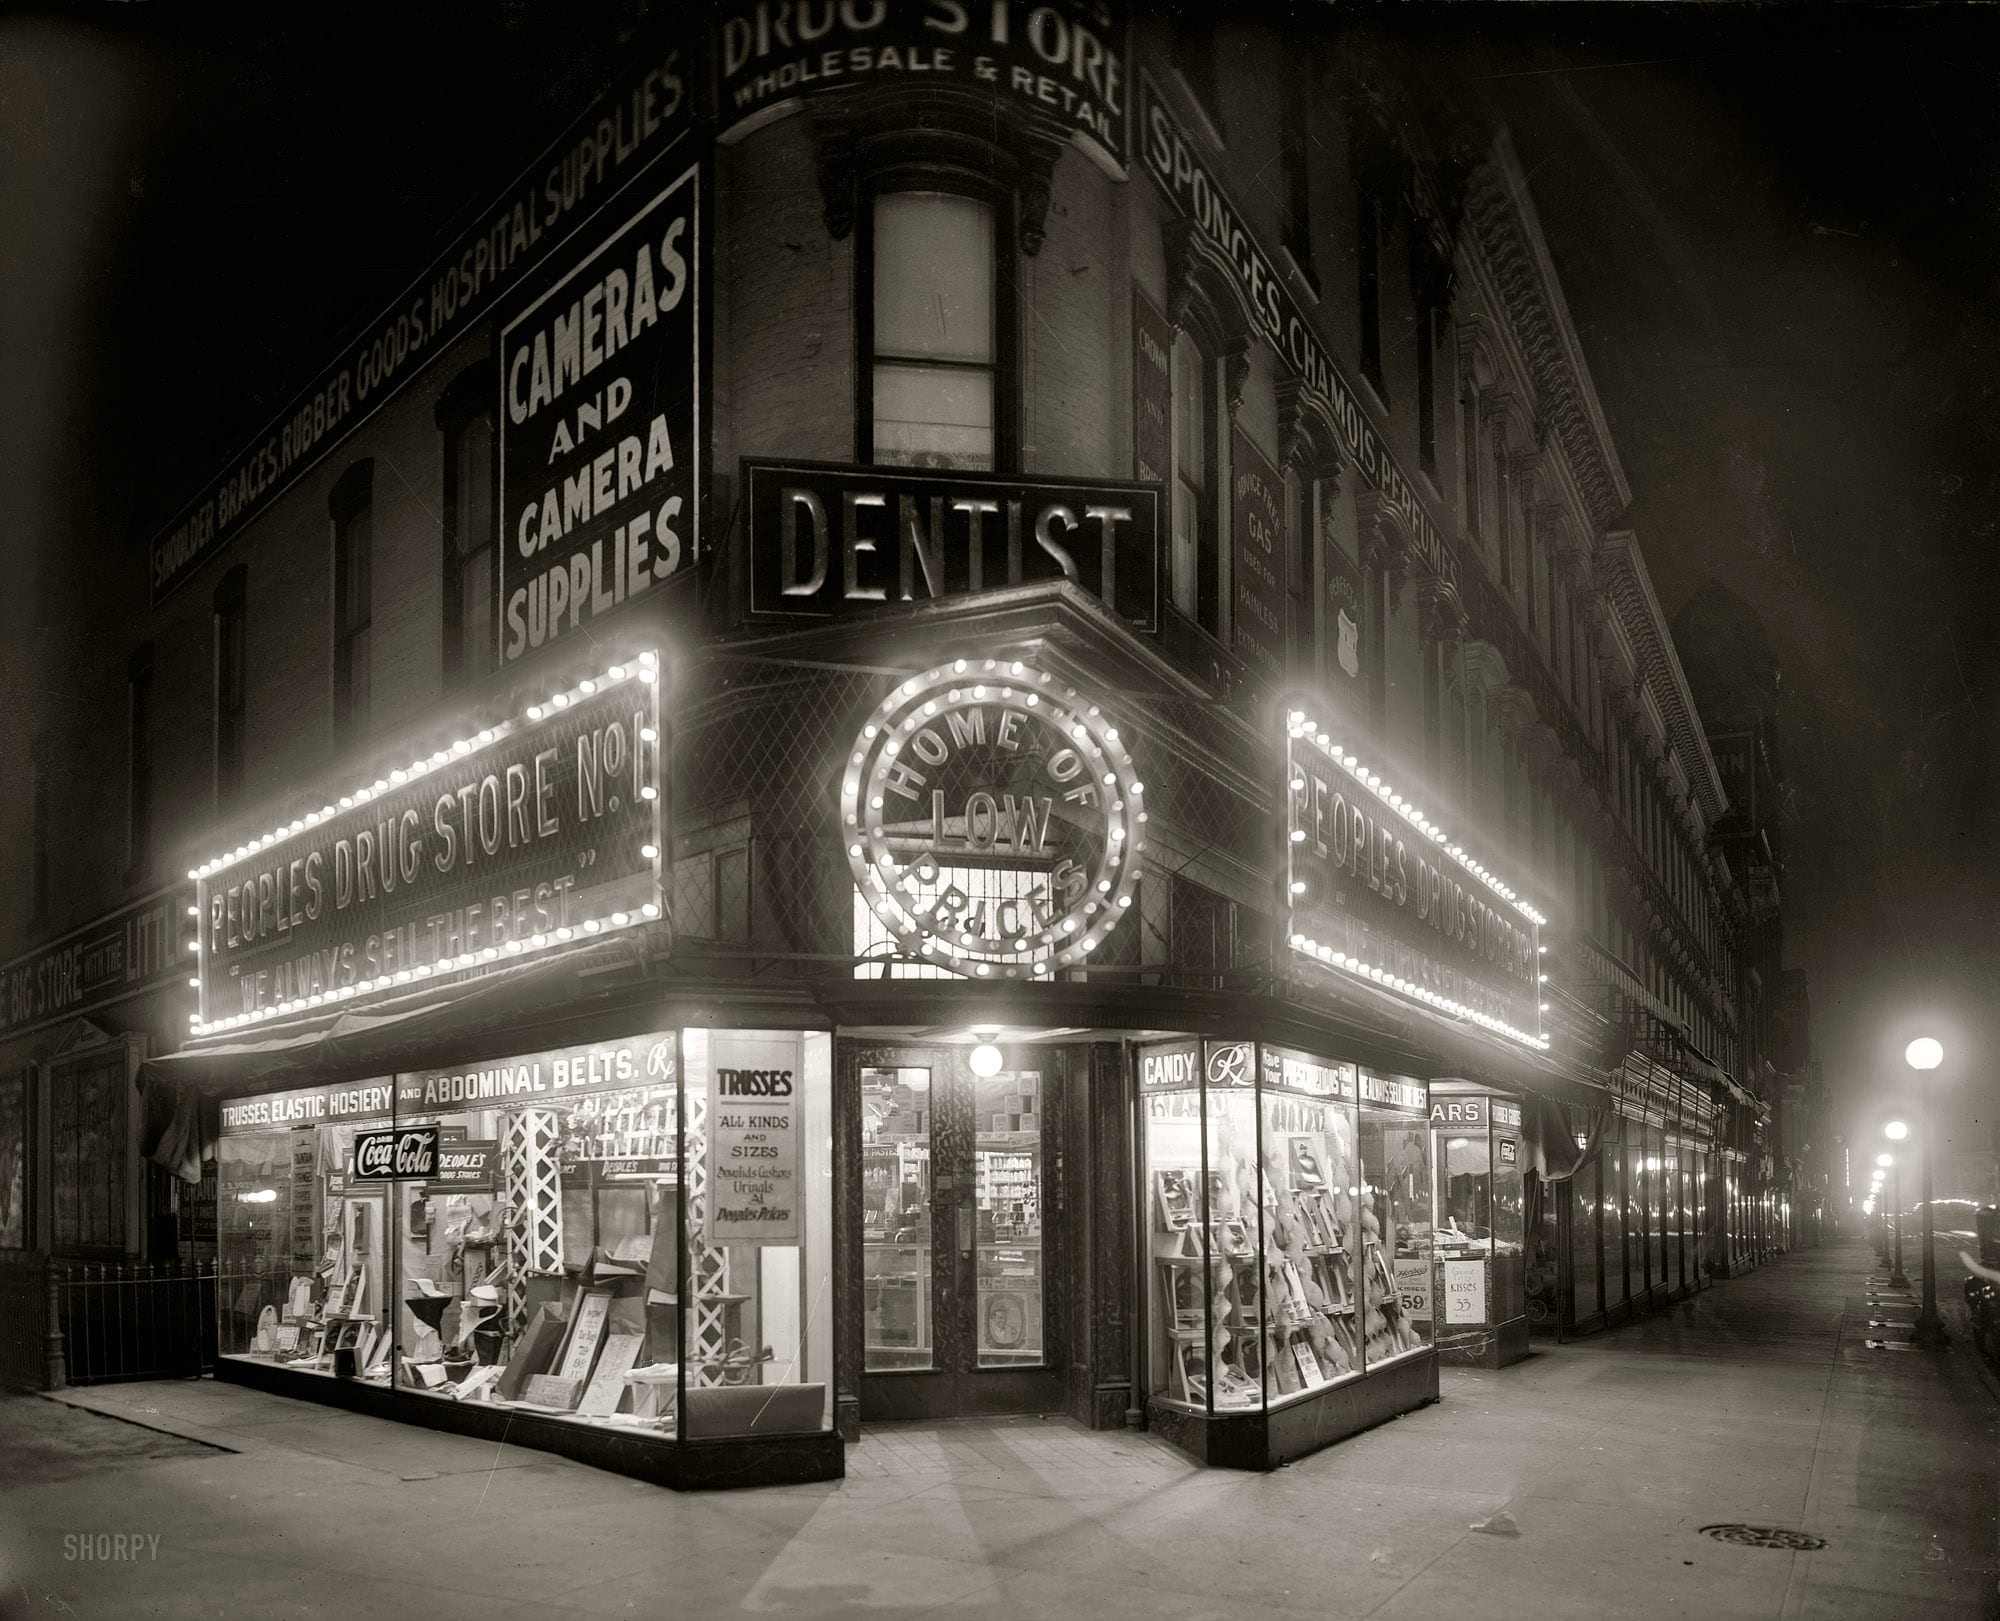 Amazing Photo of People's Drug Store at 7th and K